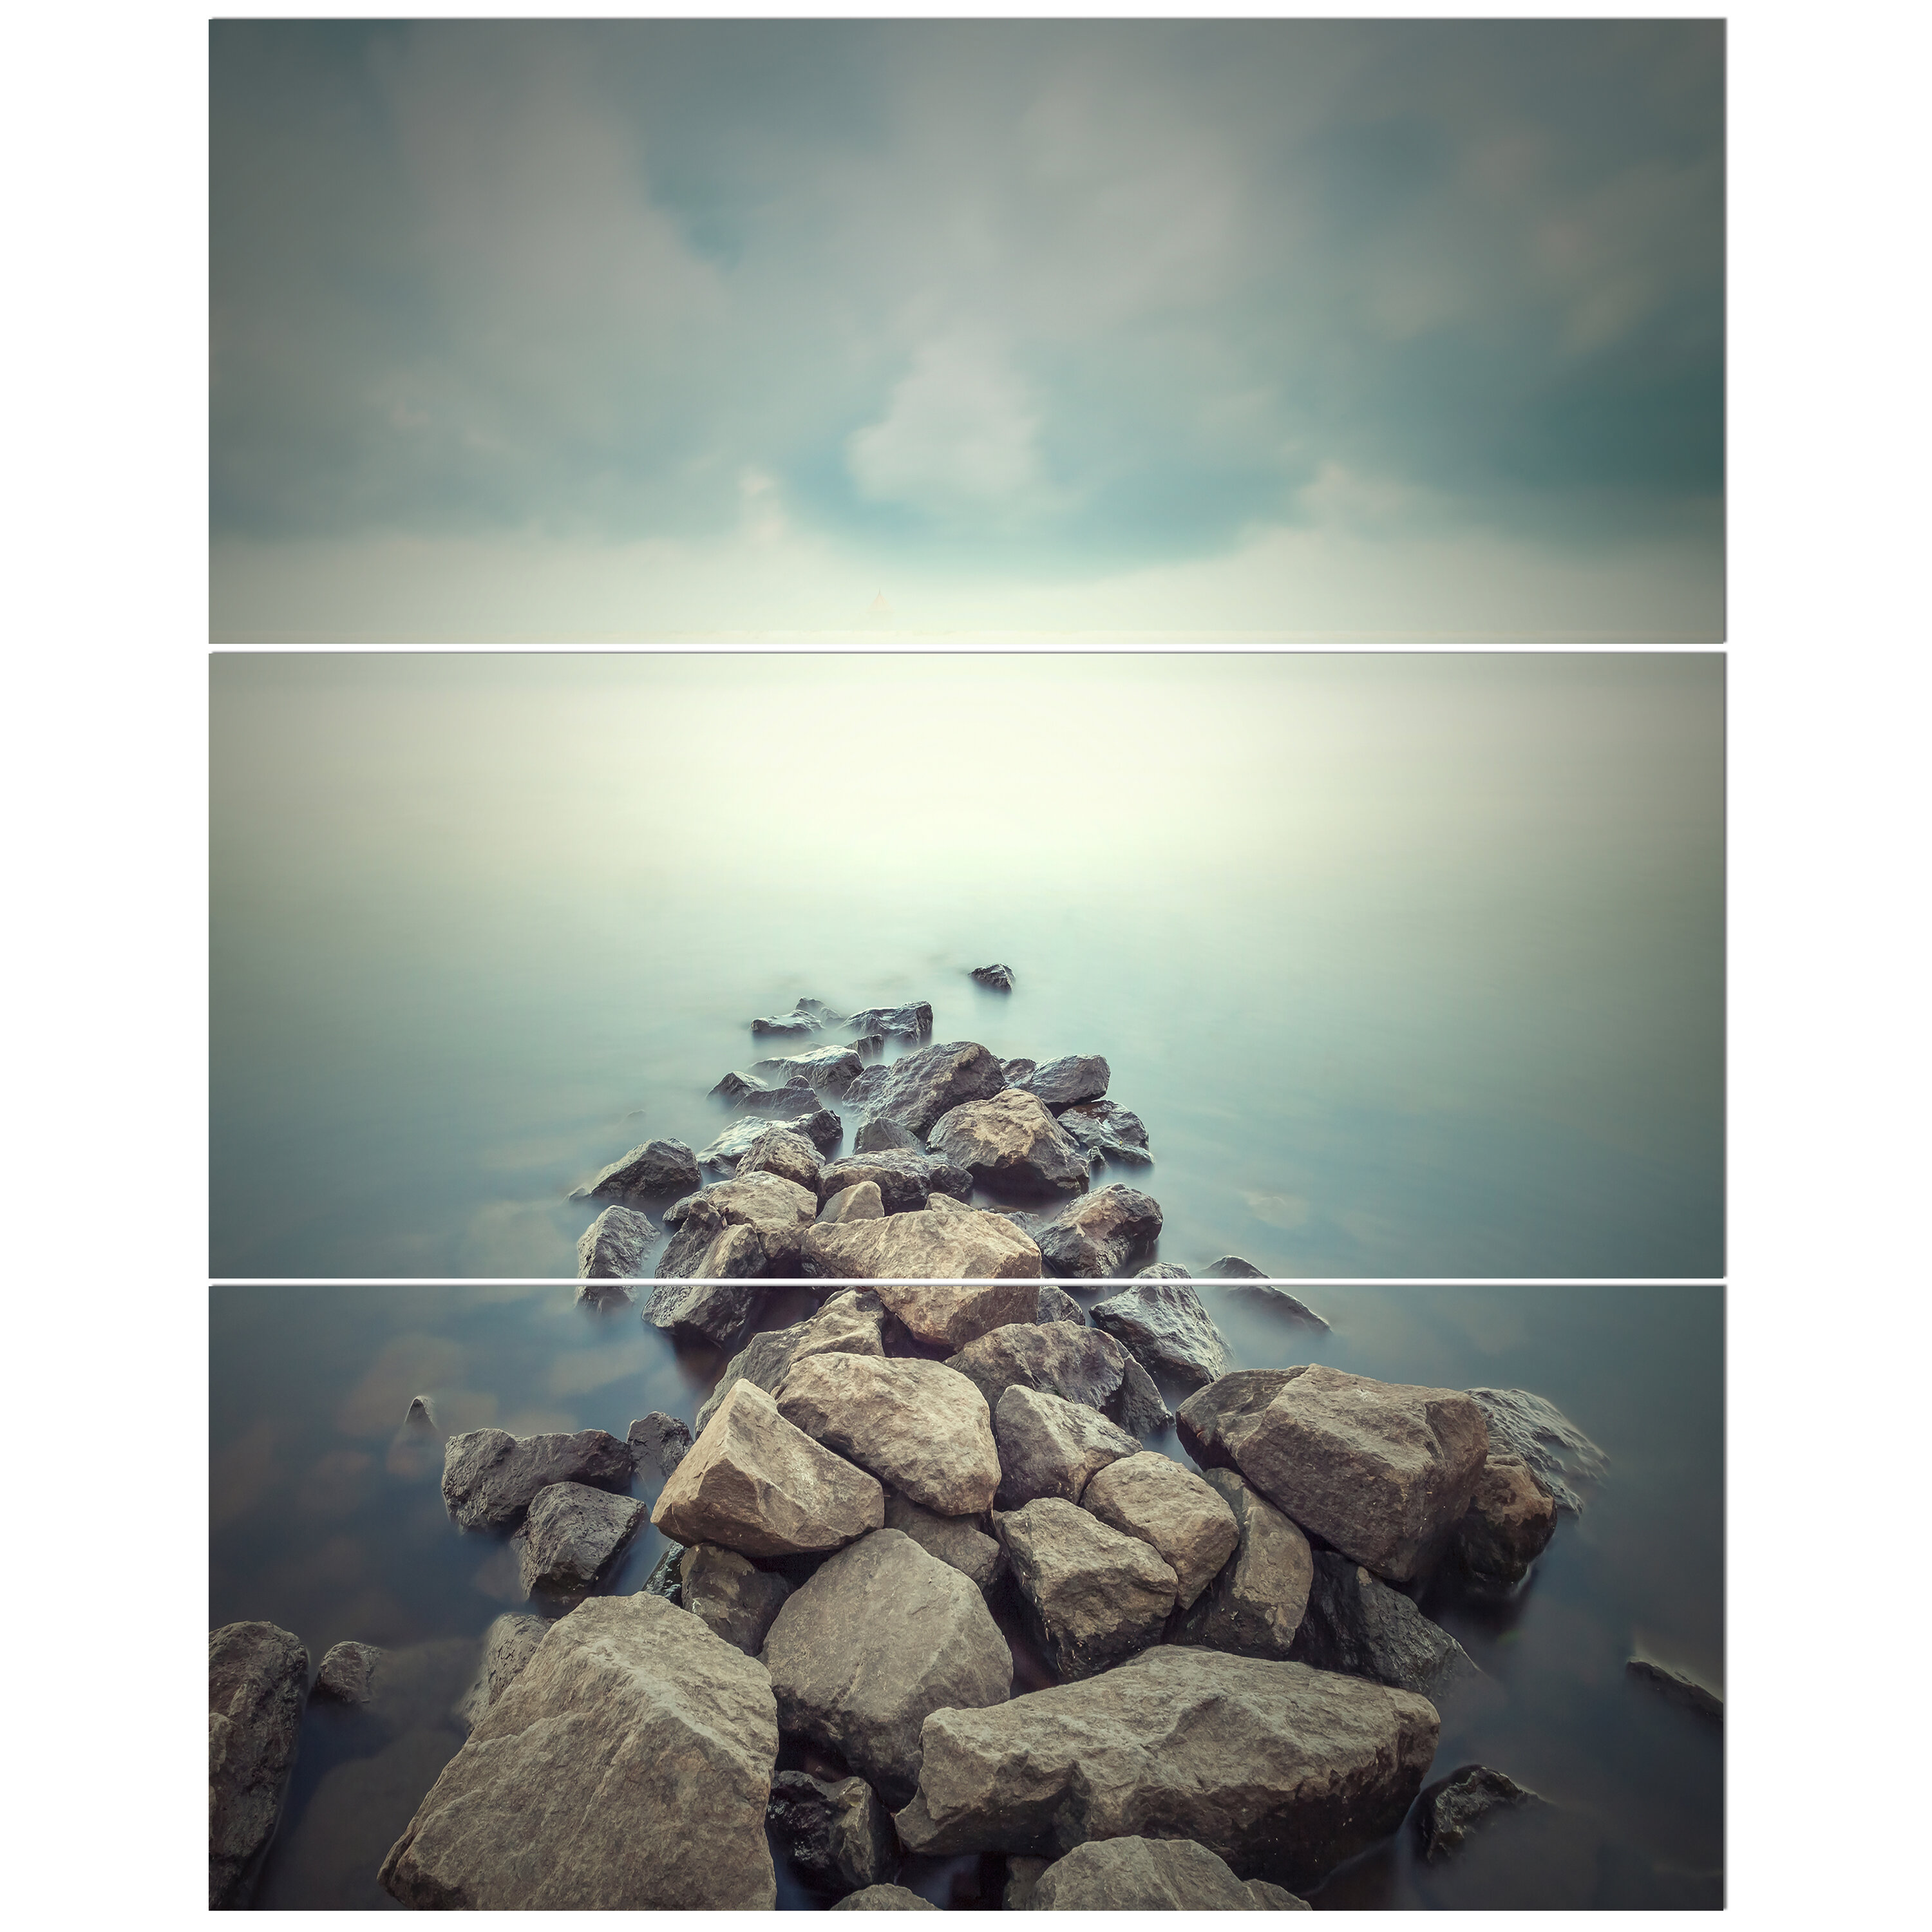 East Urban Home Rocks In Misty Photographic Print Multi Piece Image On Wrapped Canvas Wayfair